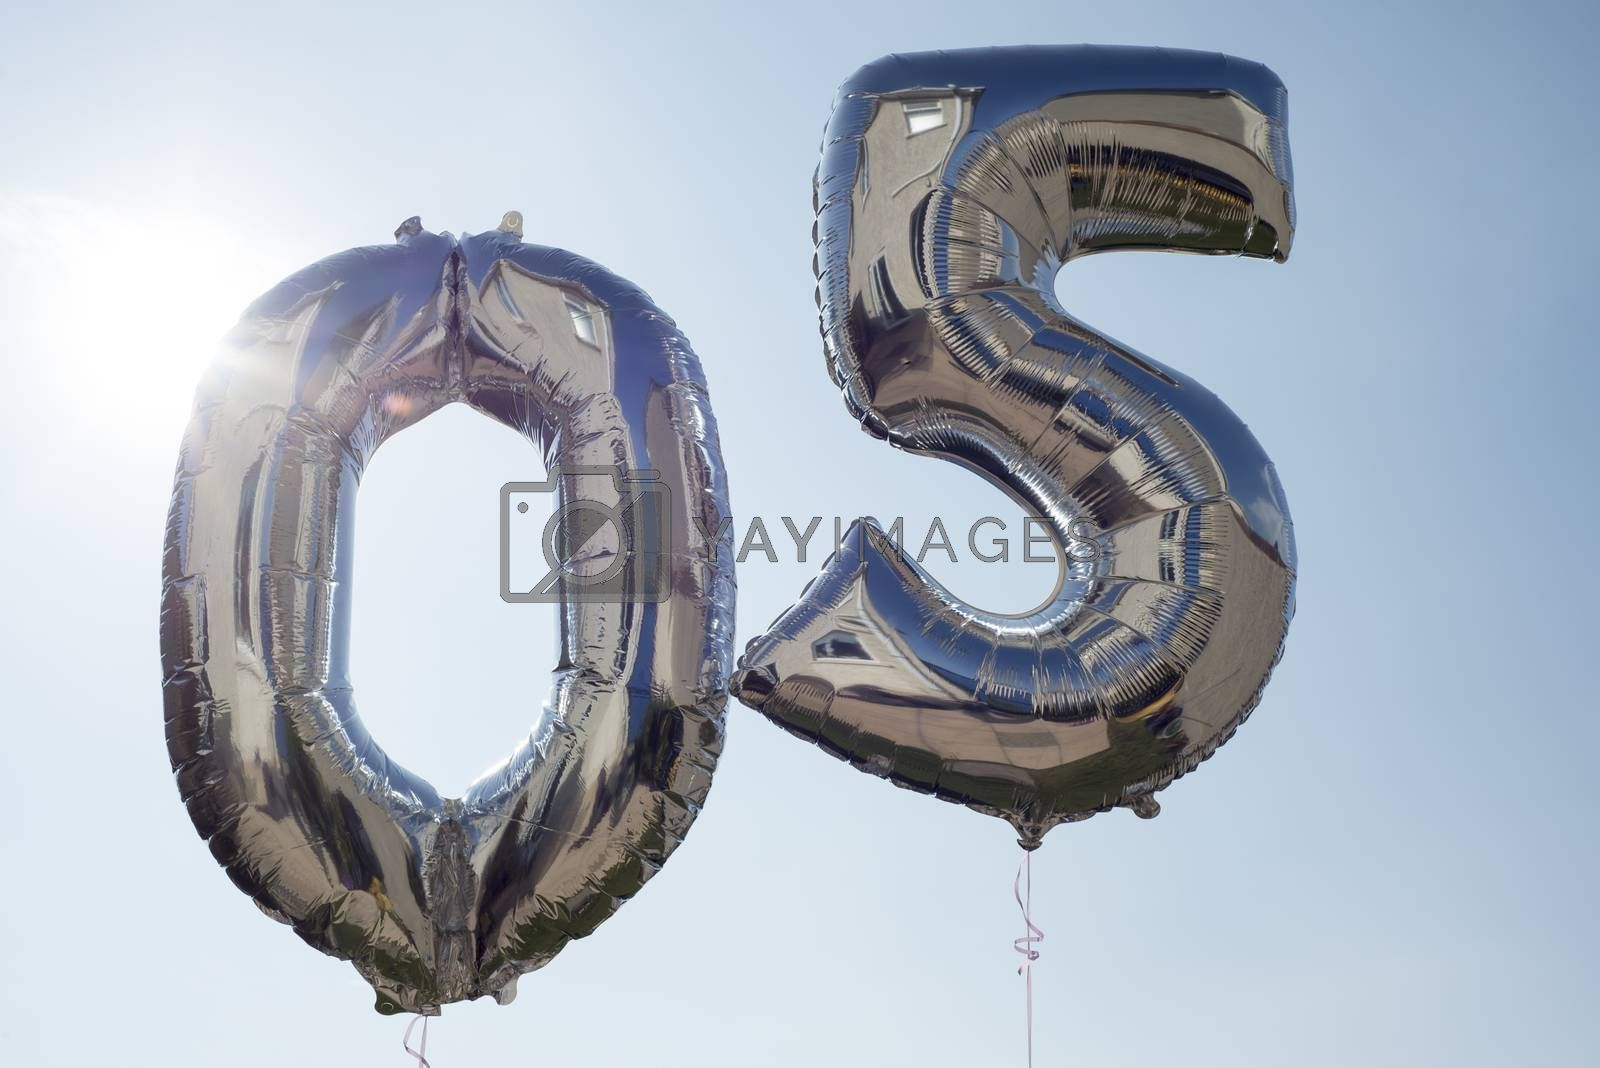 numbers 0 and 5 helium filled balloons against a blue sky